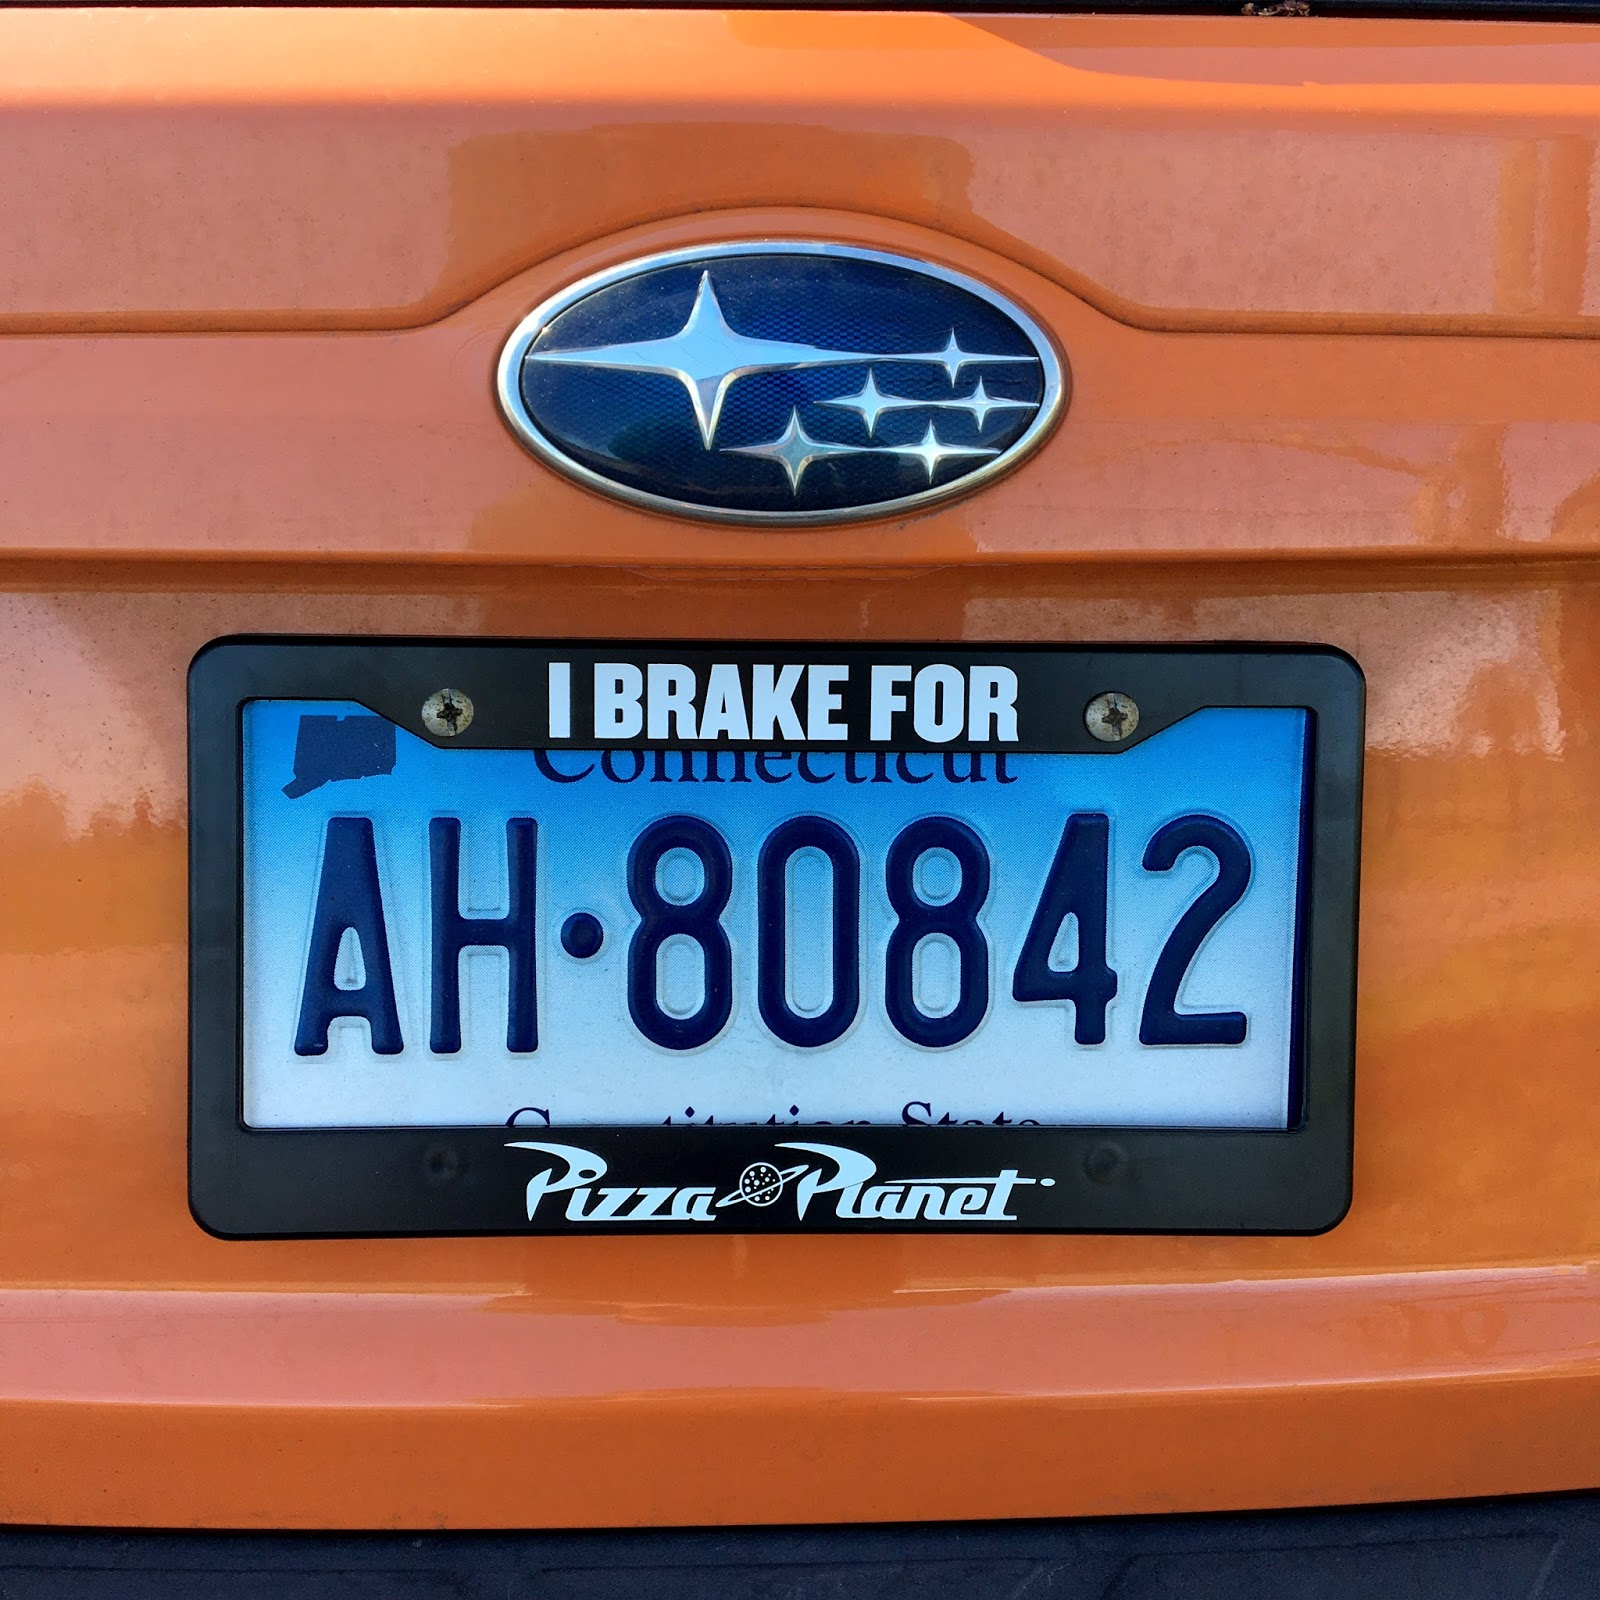 disney pixar pizza planet license plate frame cover